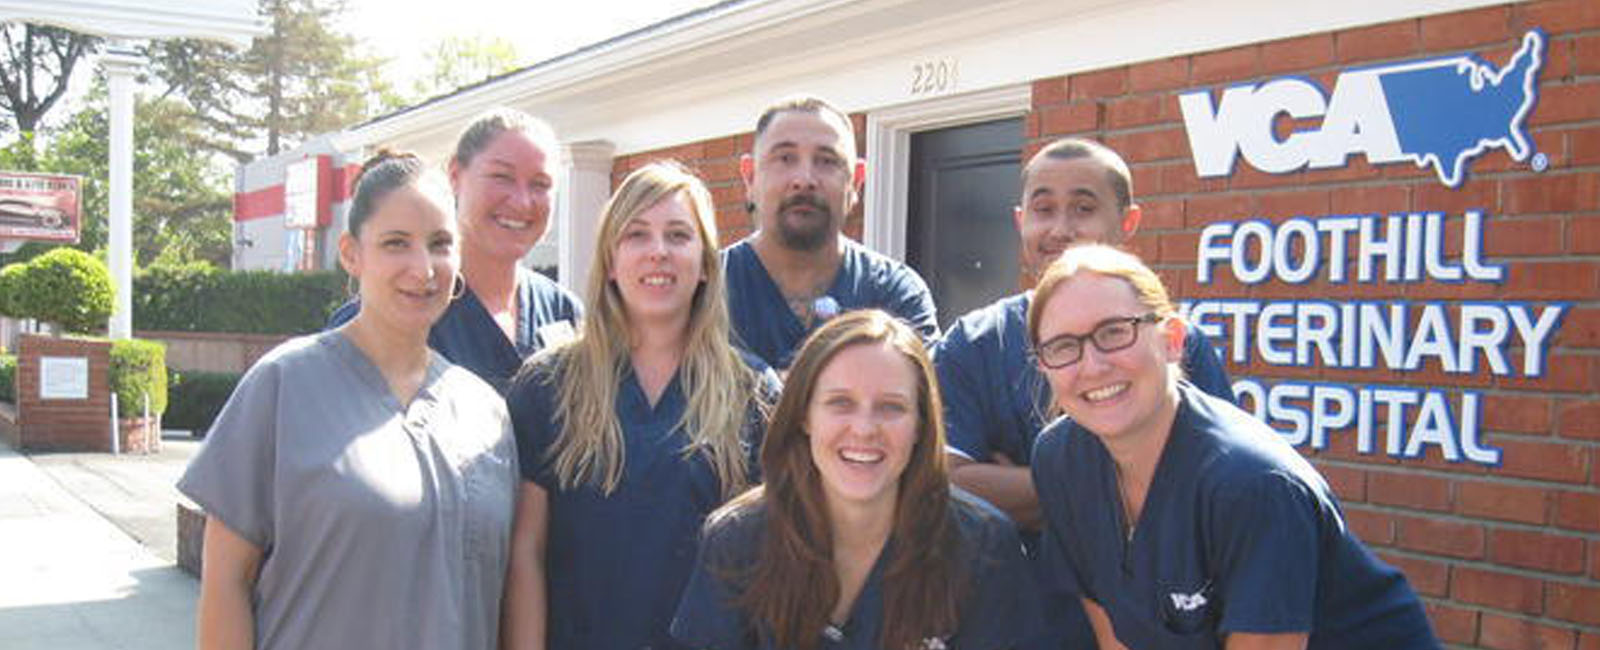 Homepage Team Picture of VCA Foothill Animal Hospital